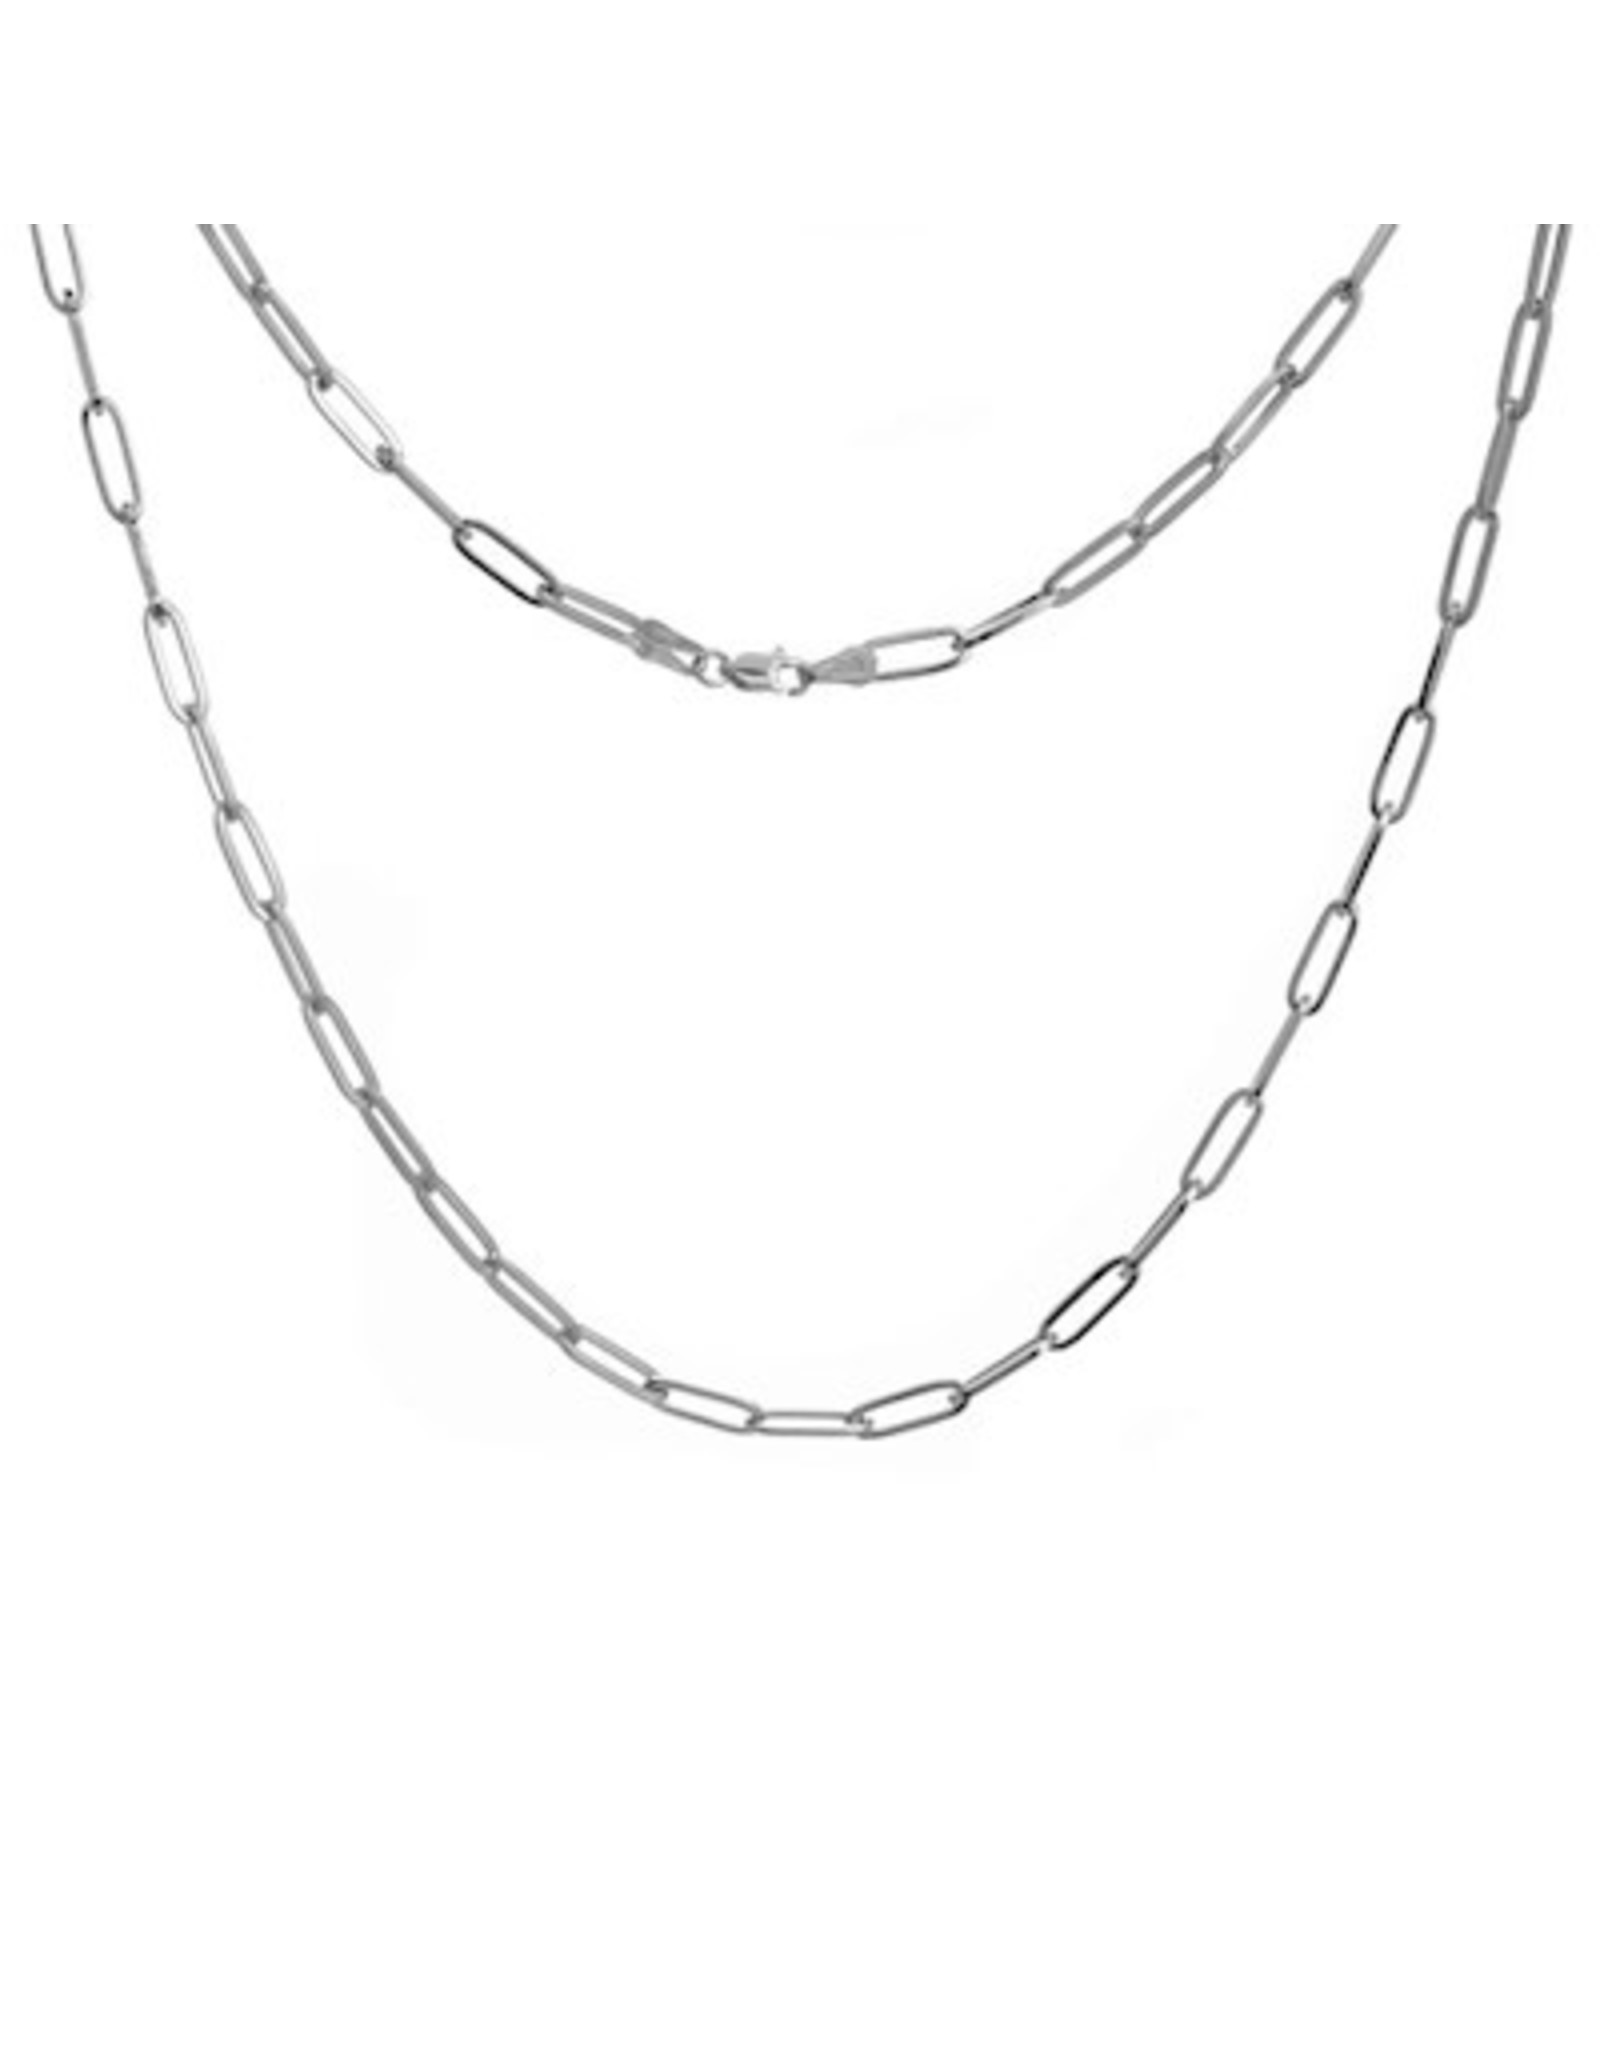 14K White Gold Paperclip Necklace, 16""